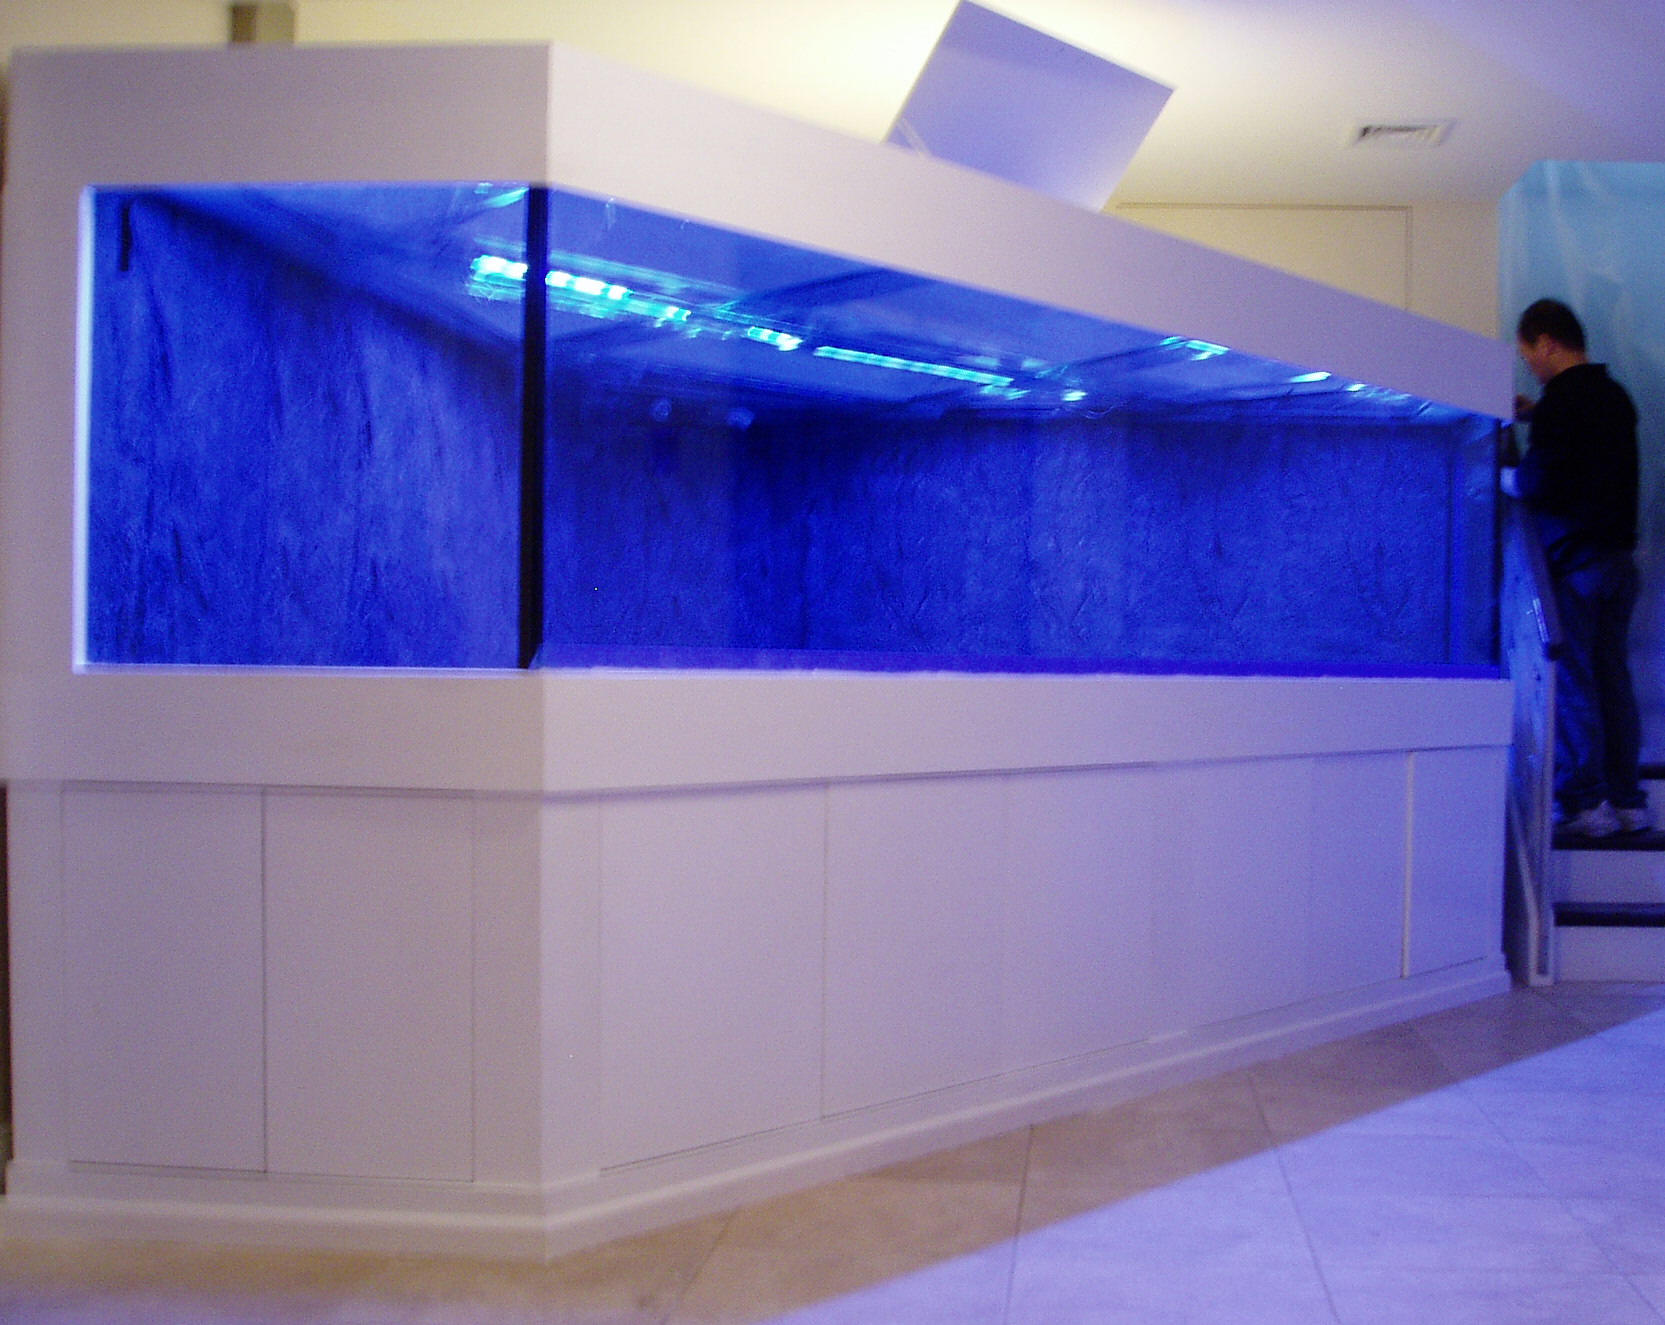 Fish tank sharks - 2 000 Gal Shark Tank With 3d Rock Background Custom Sump Filter Tank Was Built Using High Impact Resistant Glass On Site Stand Was Made Of Several